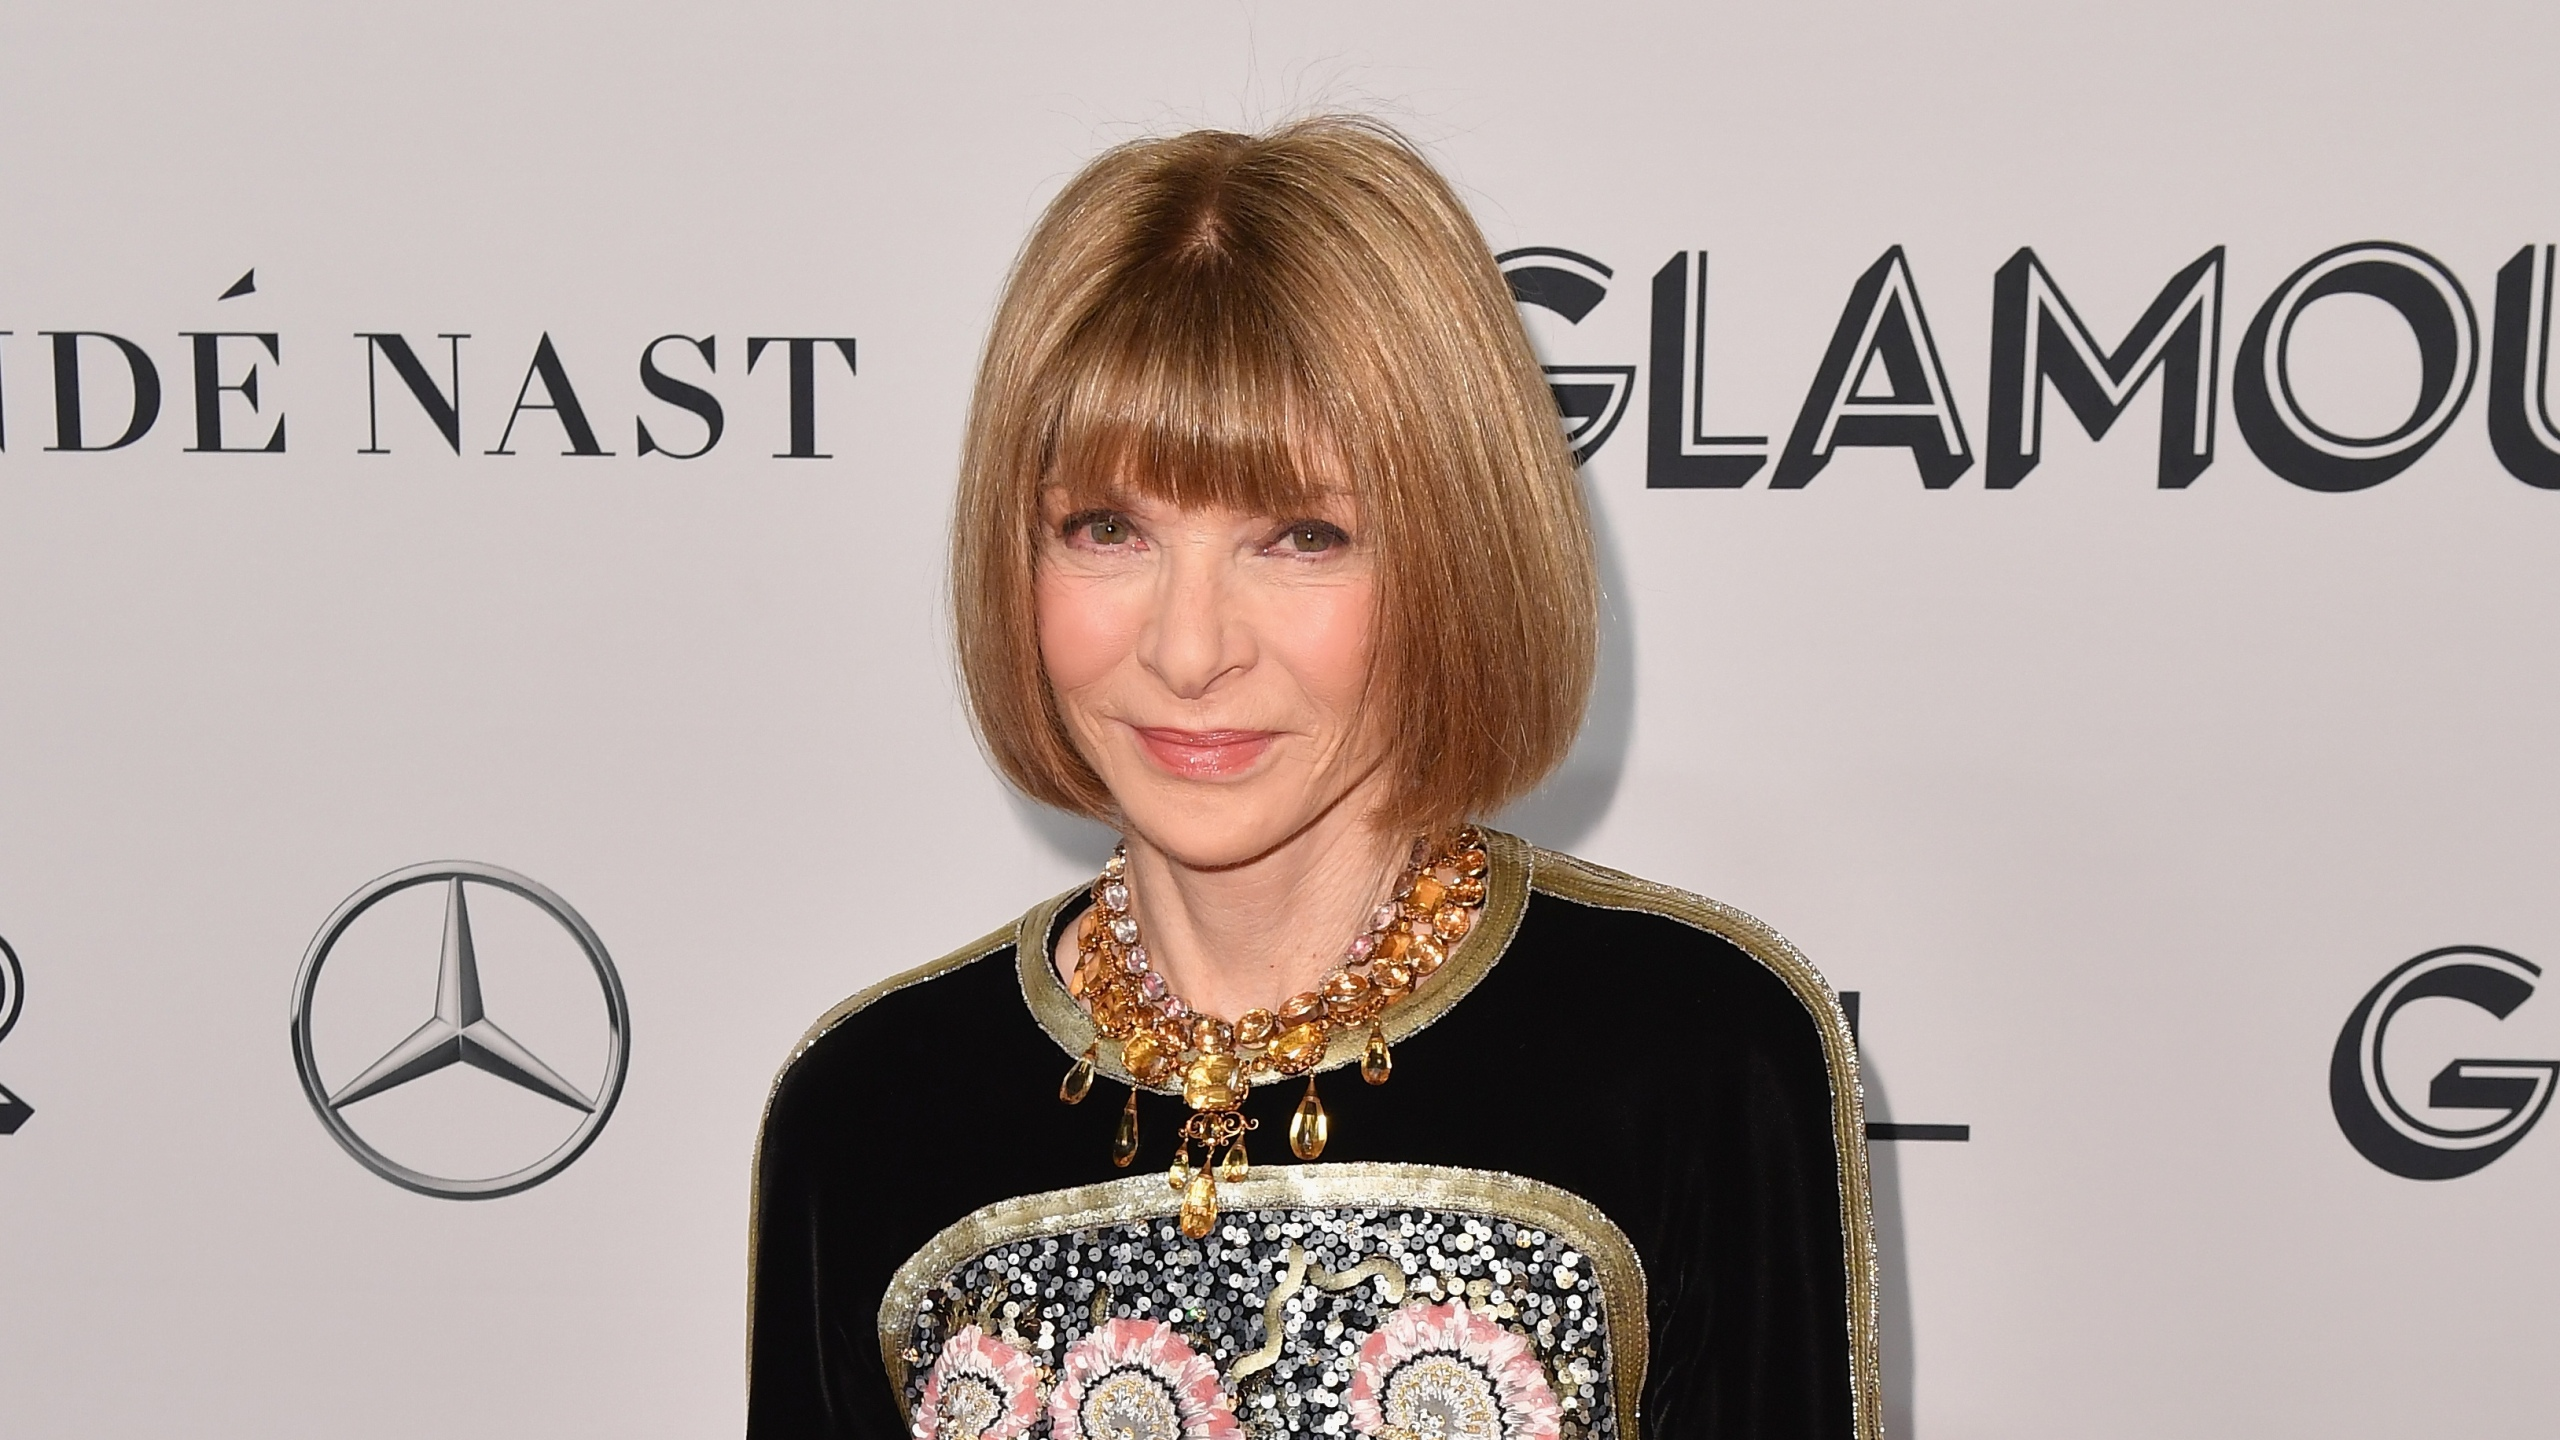 Vogue Chief Editor Anna Wintour attends the 2019 Glamour Women Of The Year Awards at Alice Tully Hall, Lincoln Center on Nov. 11, 2019, in New York City. (Angela Weiss/AFP via Getty Images)